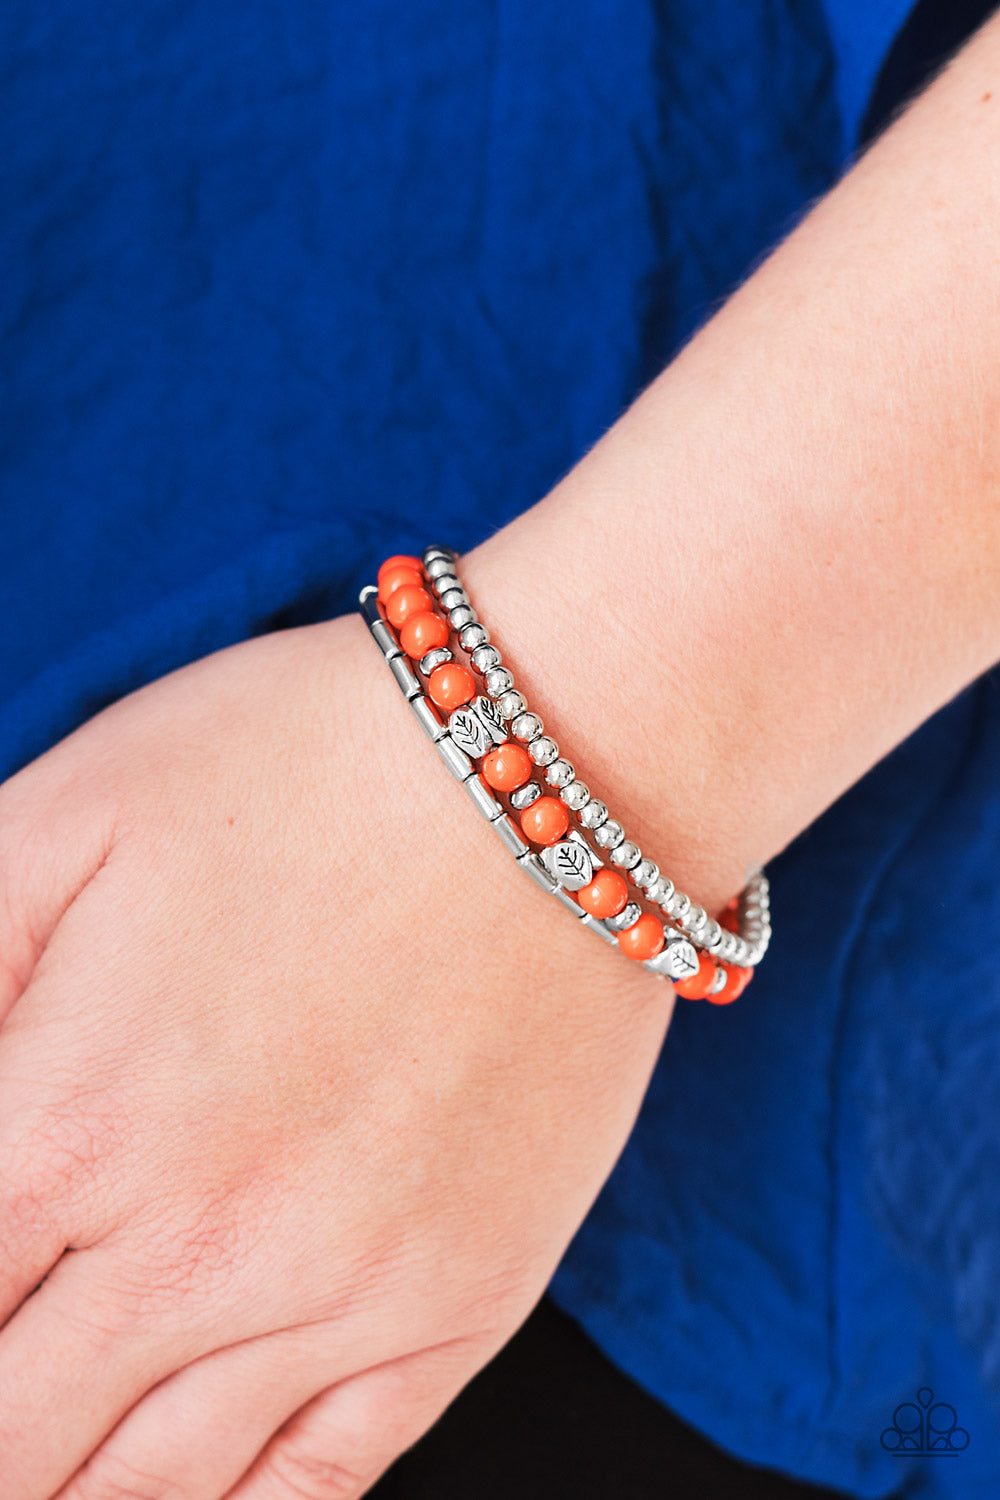 Vivacious orange beads and silver beads featuring round and cylindrical shapes are threaded along elastic stretchy bands. Stamped in tree-like patterns, faceted silver beads are sprinkled between the colorful beads for a whimsical finish.  Sold as one set of three bracelets.  Always nickel and lead free.